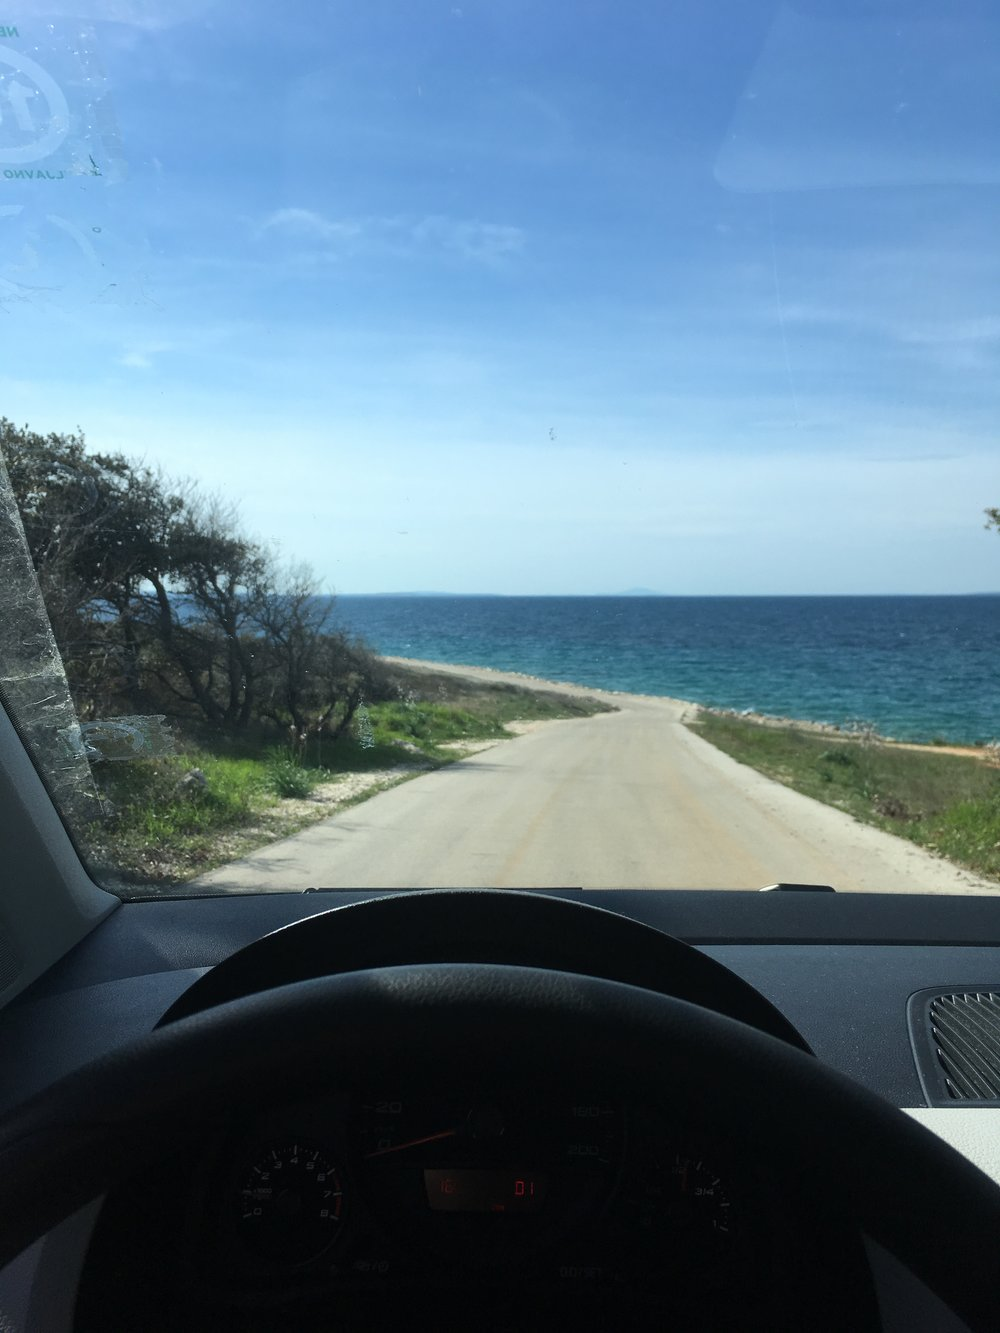 Drive to the end of the island Vir and back to Zadar is a great daytrip.